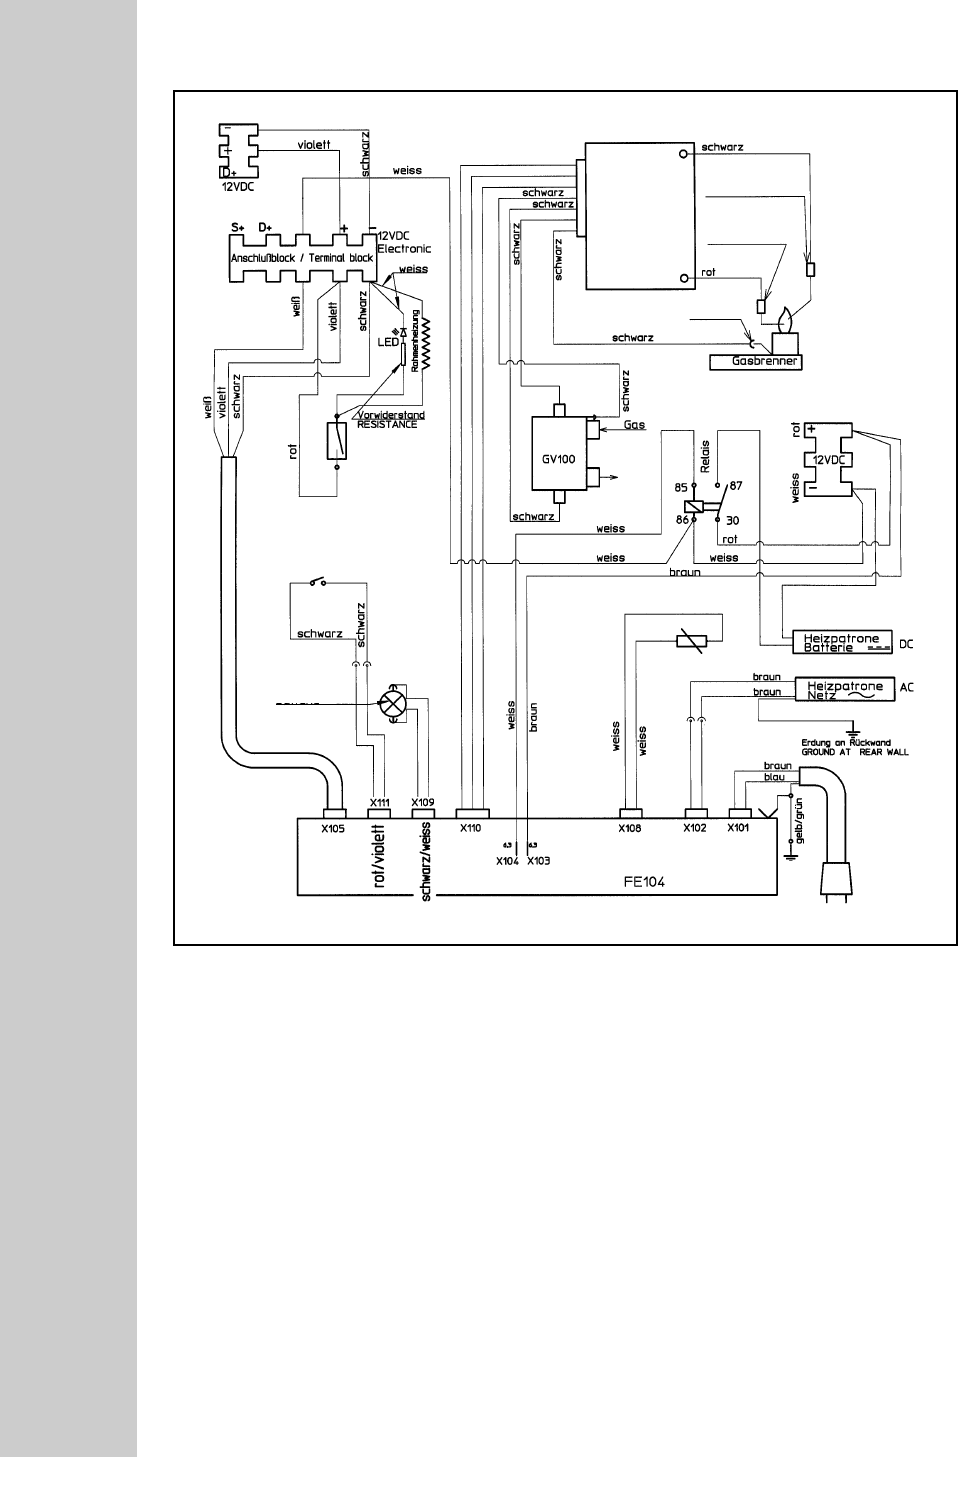 43fc0a23 351b 4018 b8ad f4061294773f bg1b page 27 of dometic refrigerator rm 7605 l user guide dometic refrigerator wiring diagram at bakdesigns.co